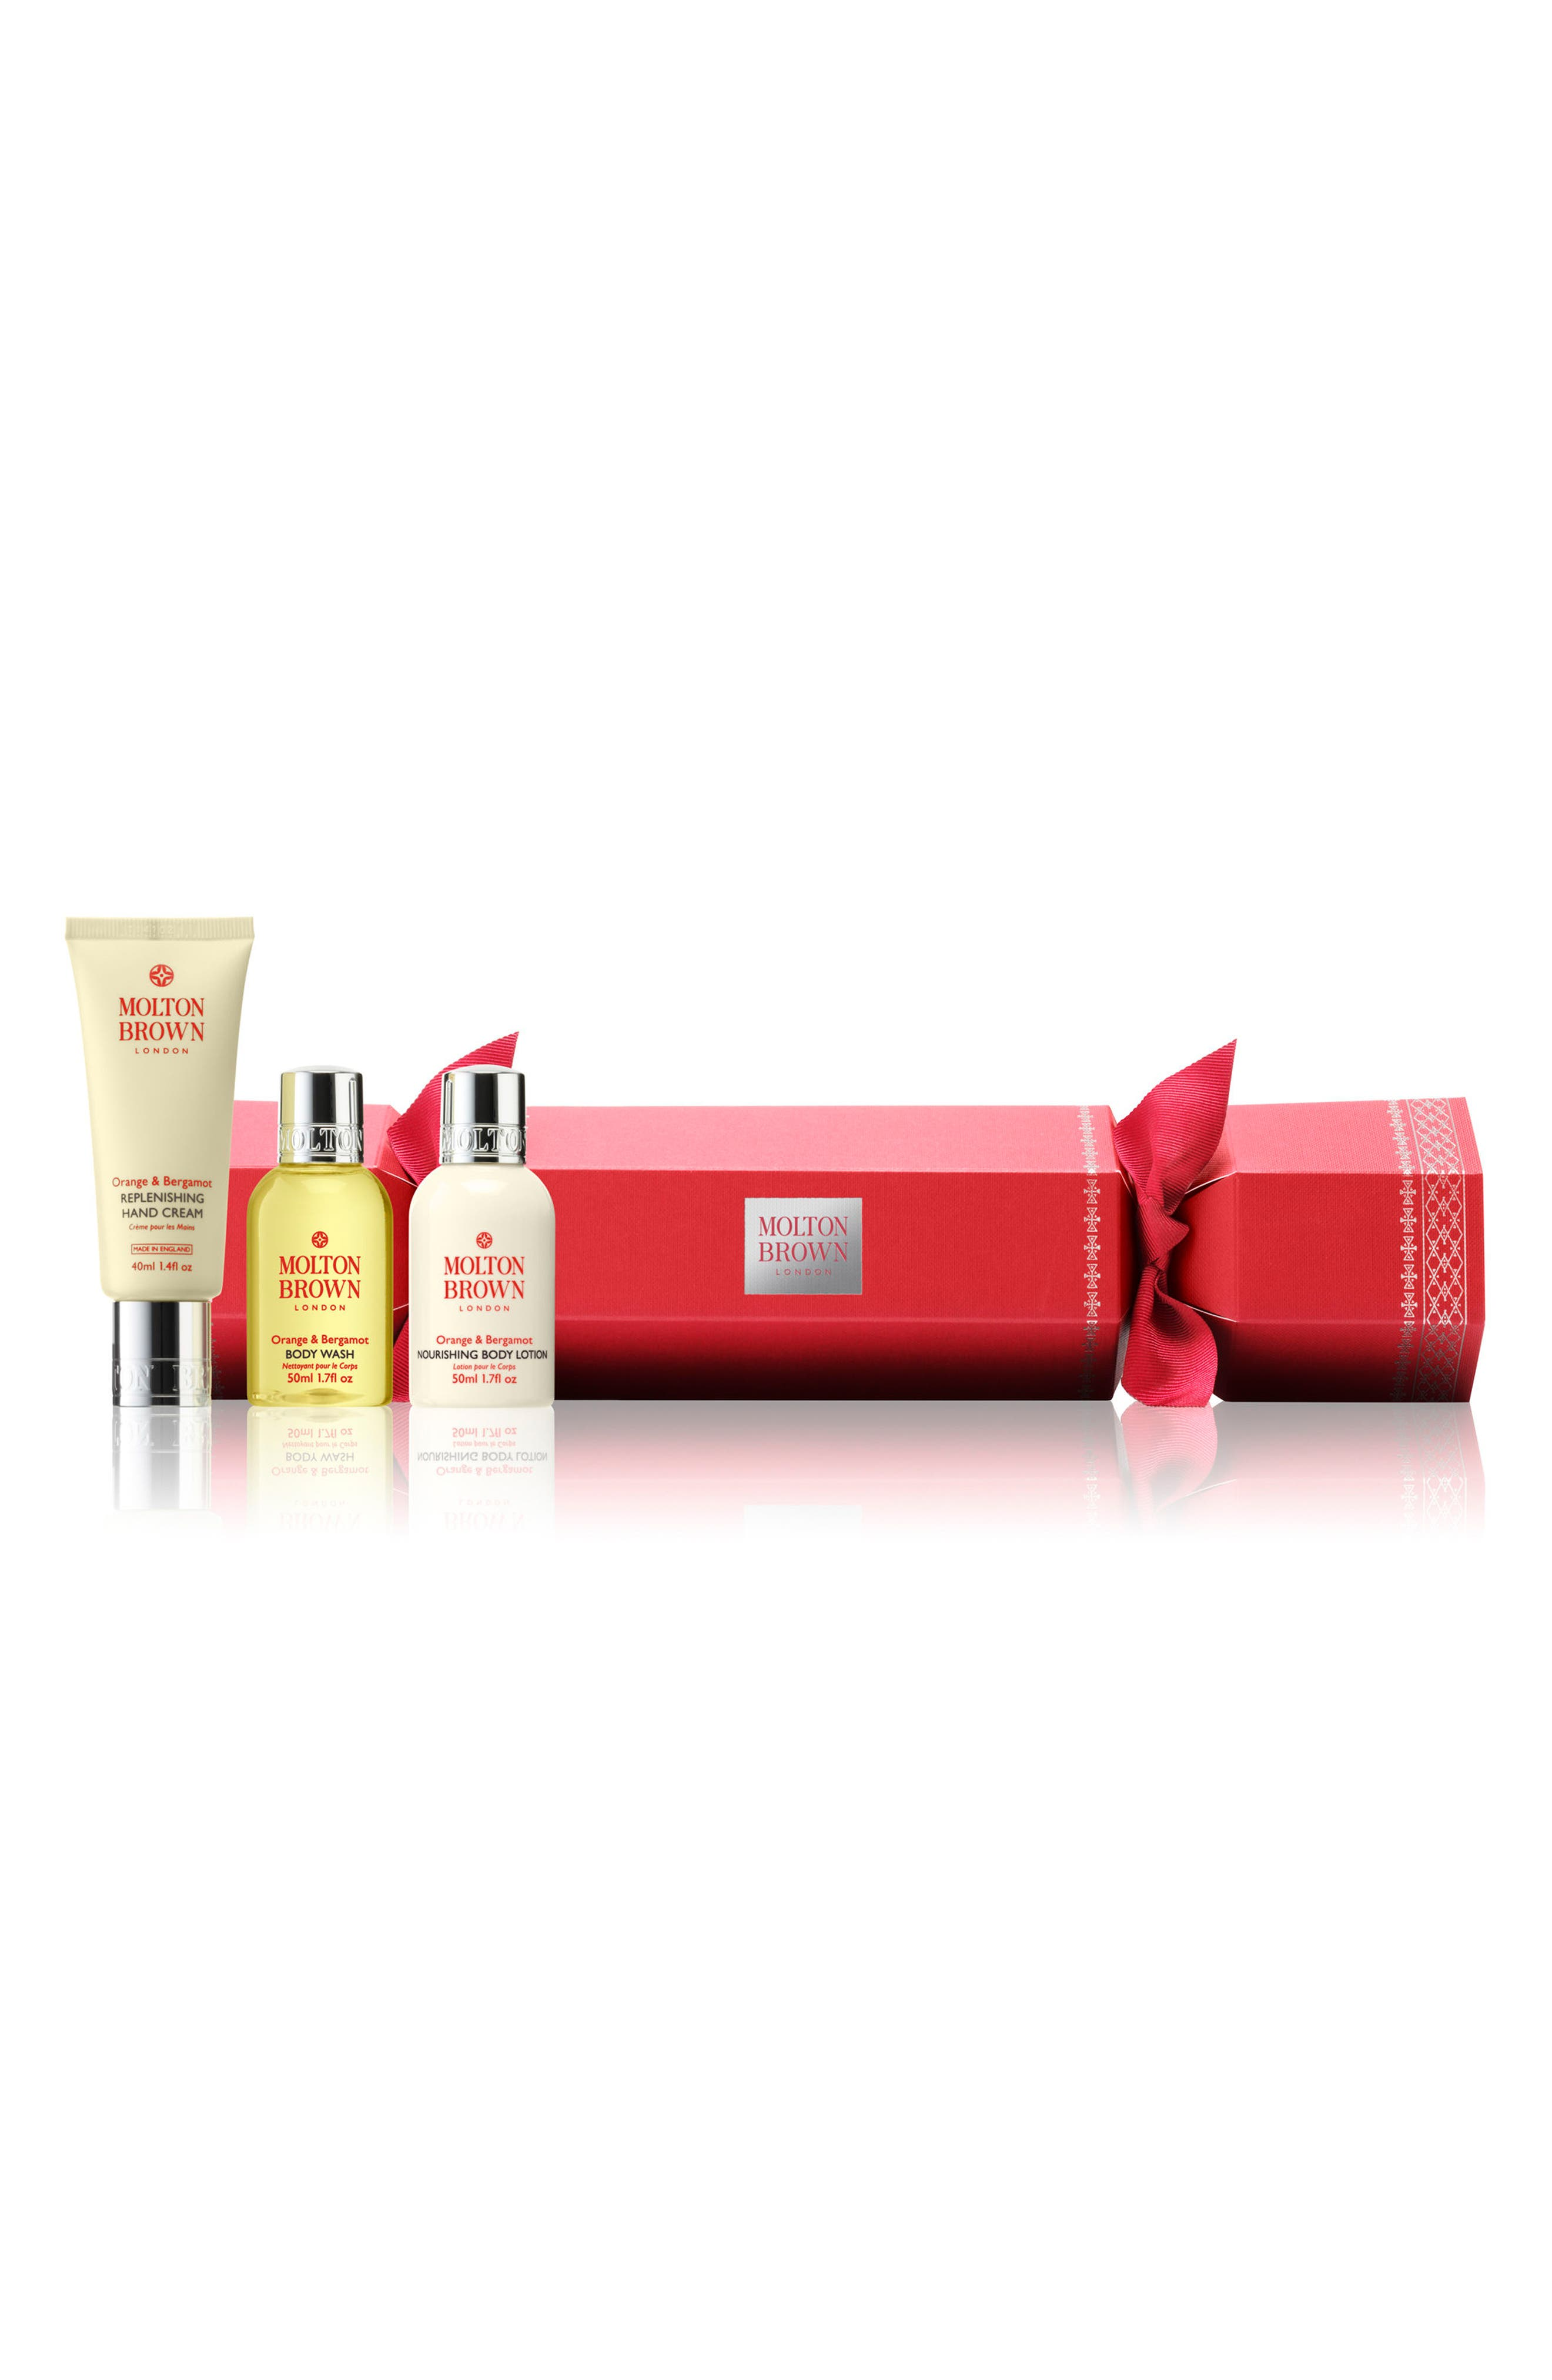 Main Image - MOLTON BROWN London Orange & Bergamot Collection (Nordstrom Exclusive) ($29 Value)